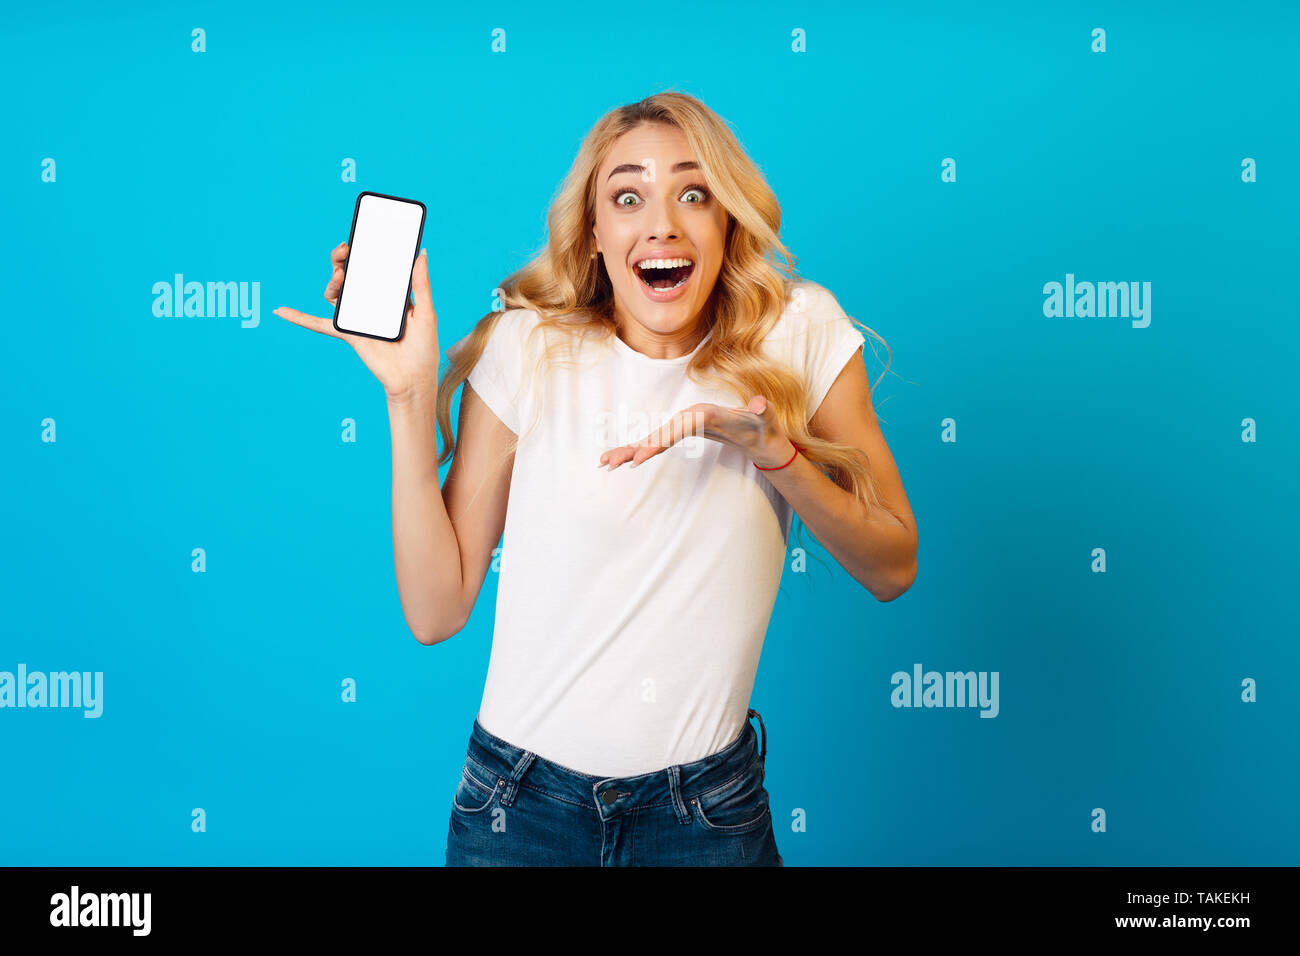 Shocked Girl Showing Blank Smartphone Screen For Advertisement - Stock Image